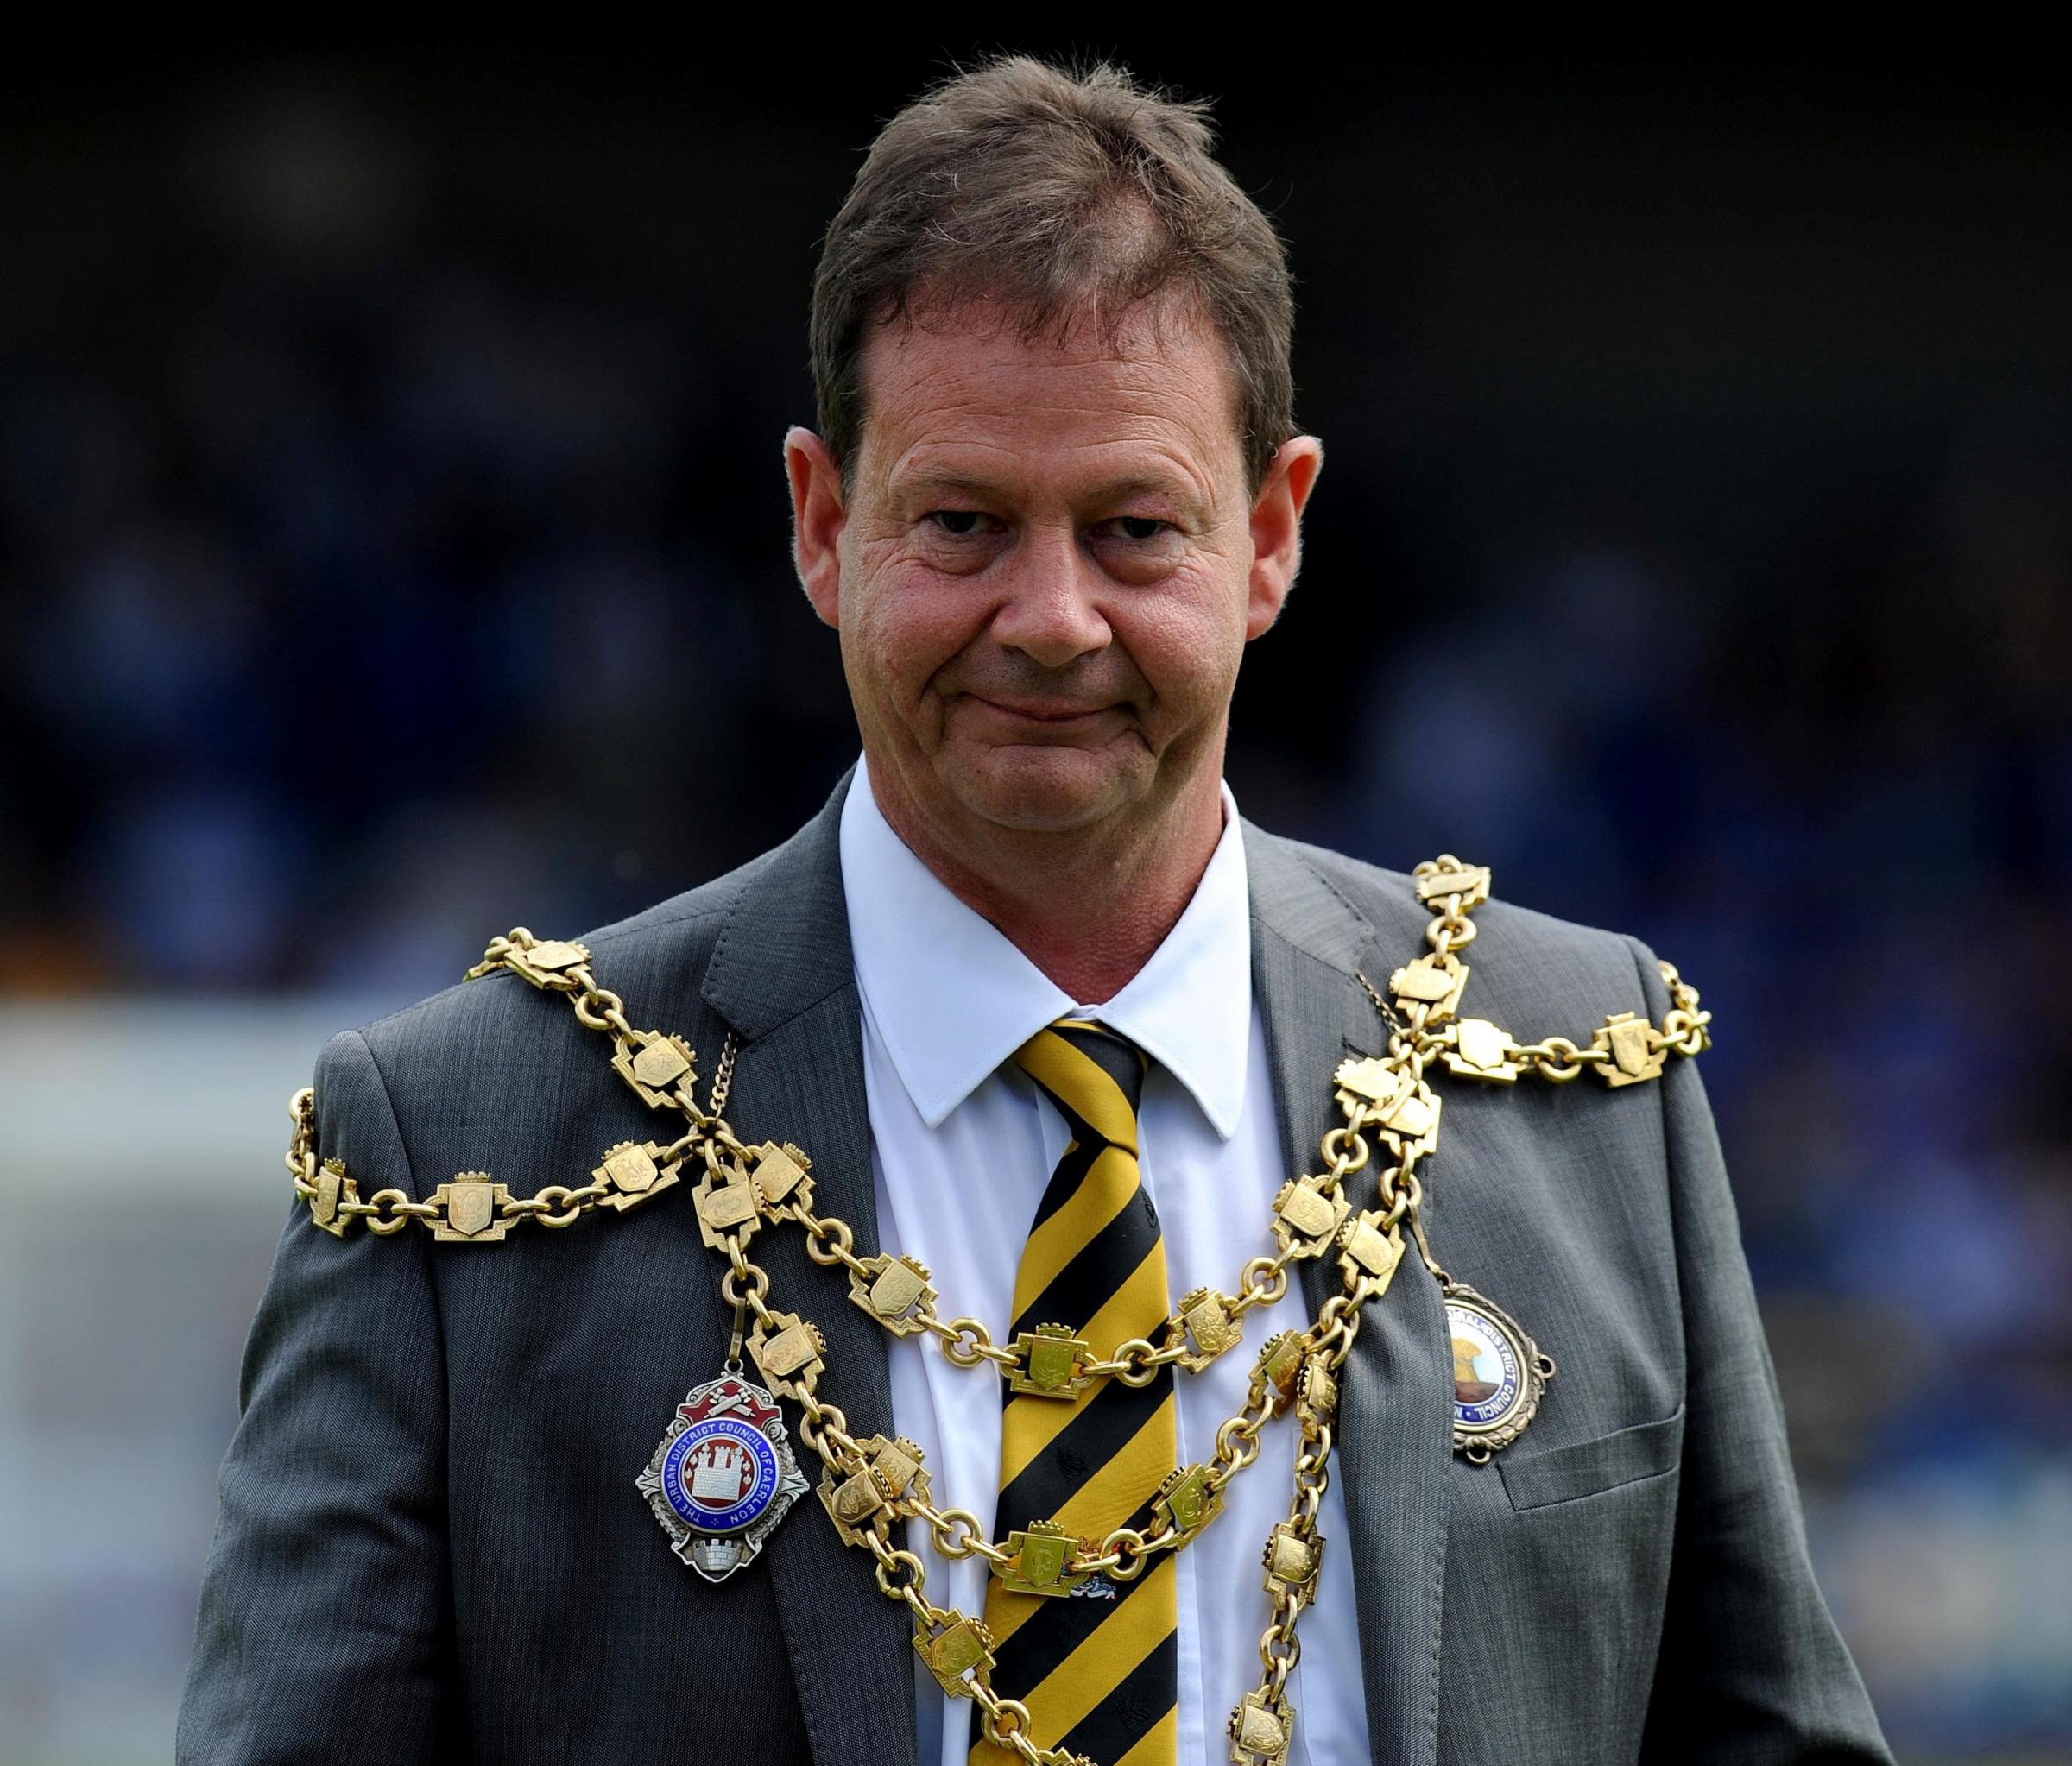 NO WELCOME ROLE: The Mayor of Newport Cllr Matthew Evans won't be greeting President Obama